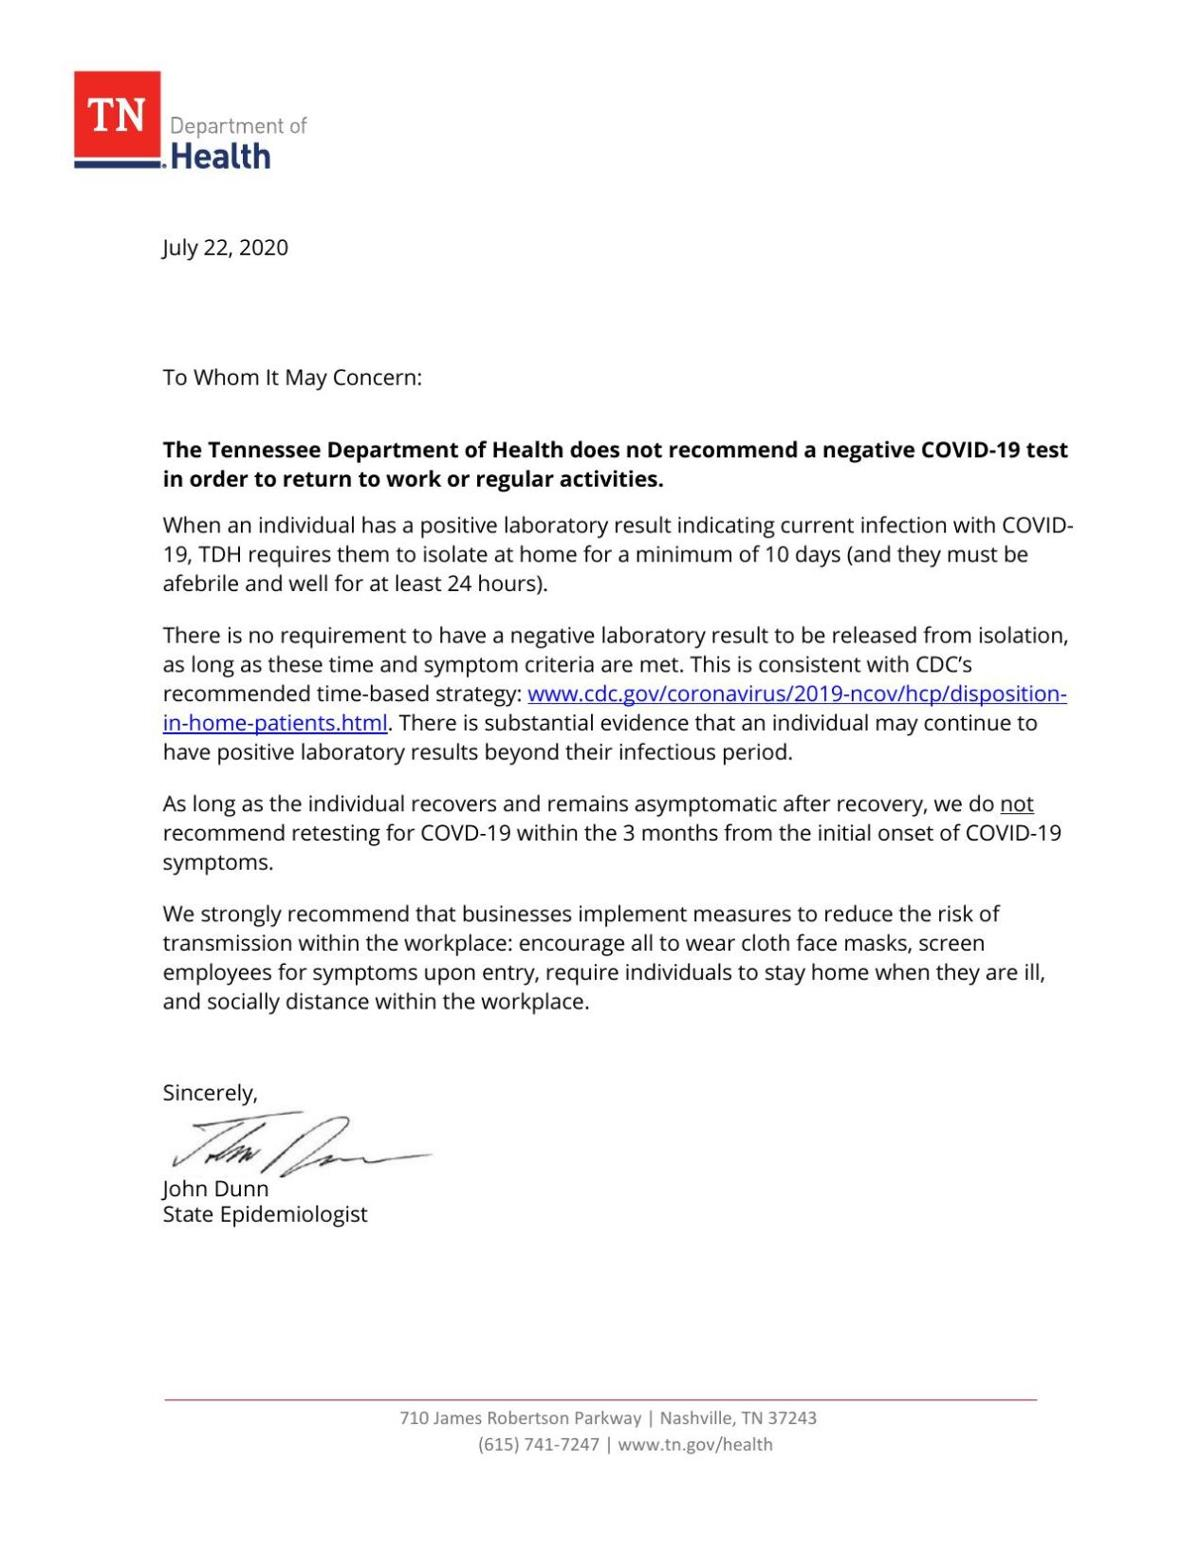 Tennessee Department of Health letter to employers